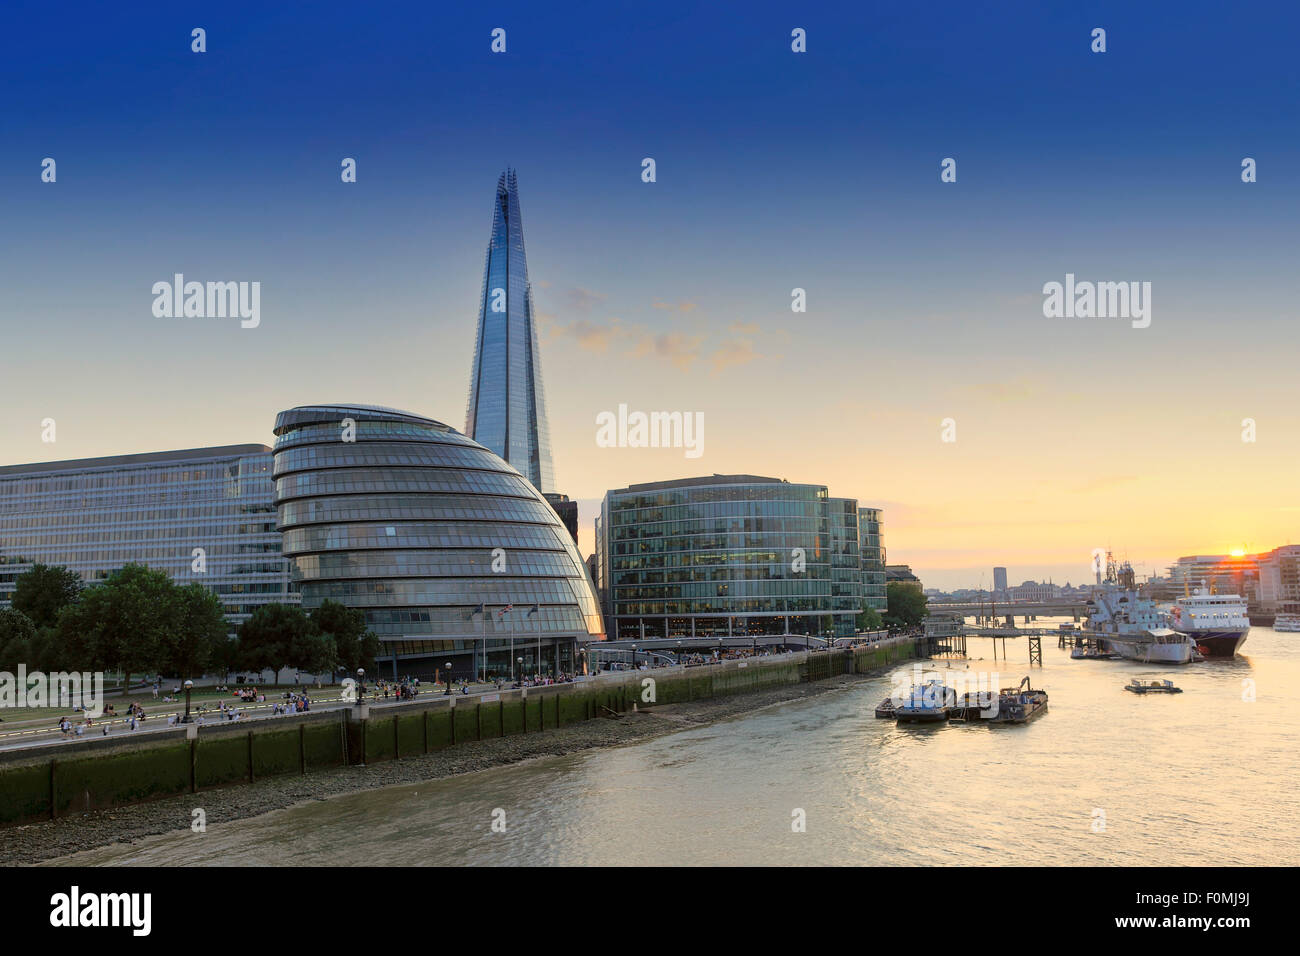 The Shard, City Hall (HQ of the Mayor of London) and the Thames river in London at sunset - Stock Image